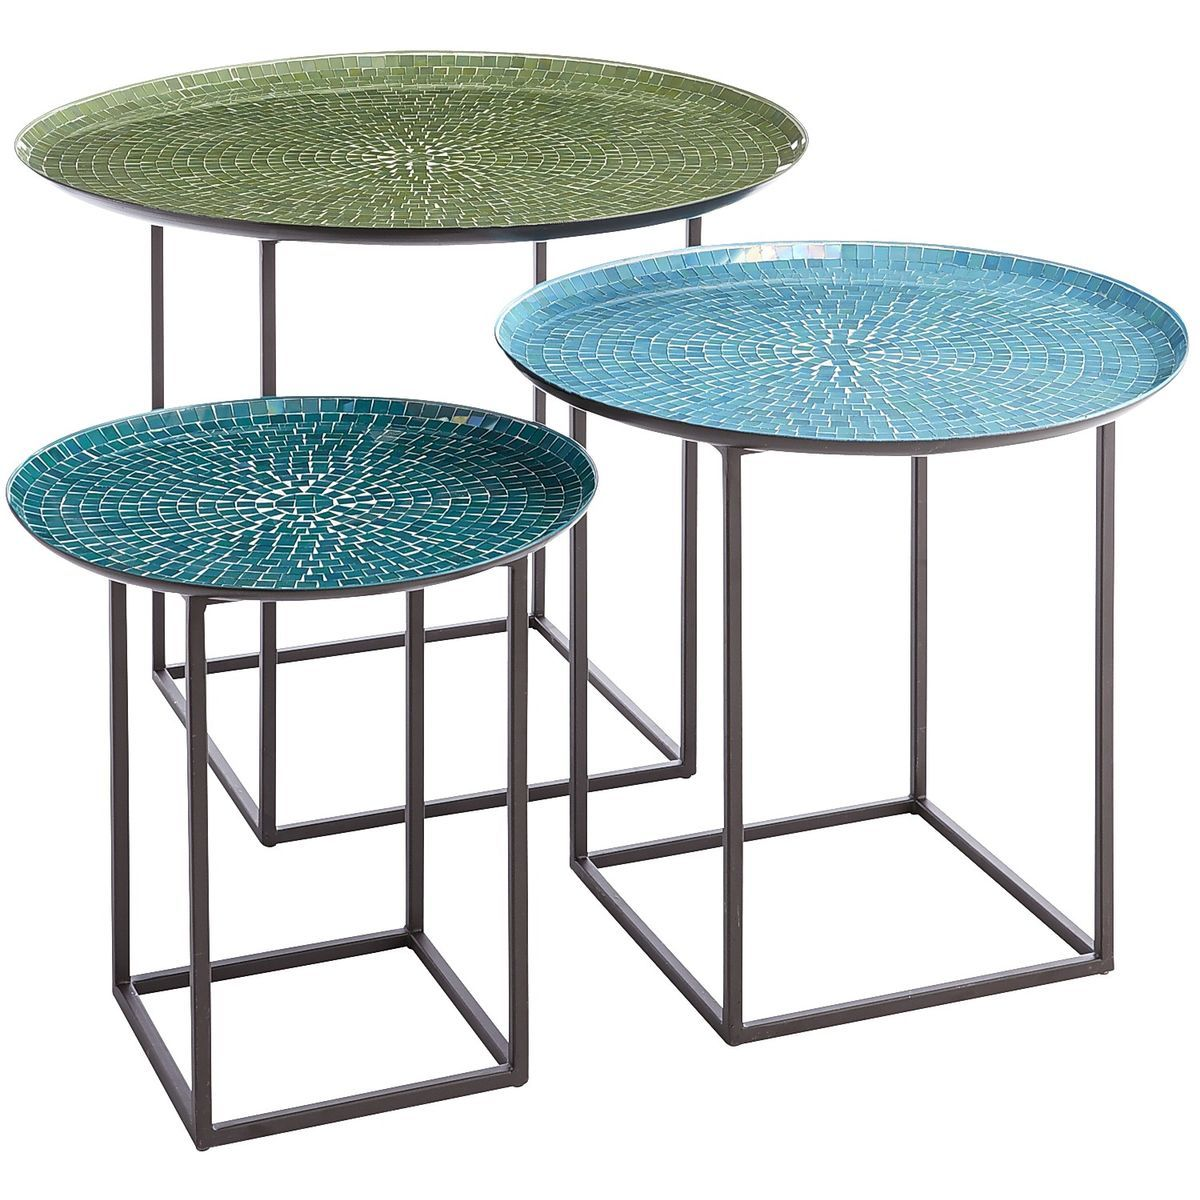 Annabelle Mosaic Coffee Table Set Pier 1 Imports Mosaic Coffee